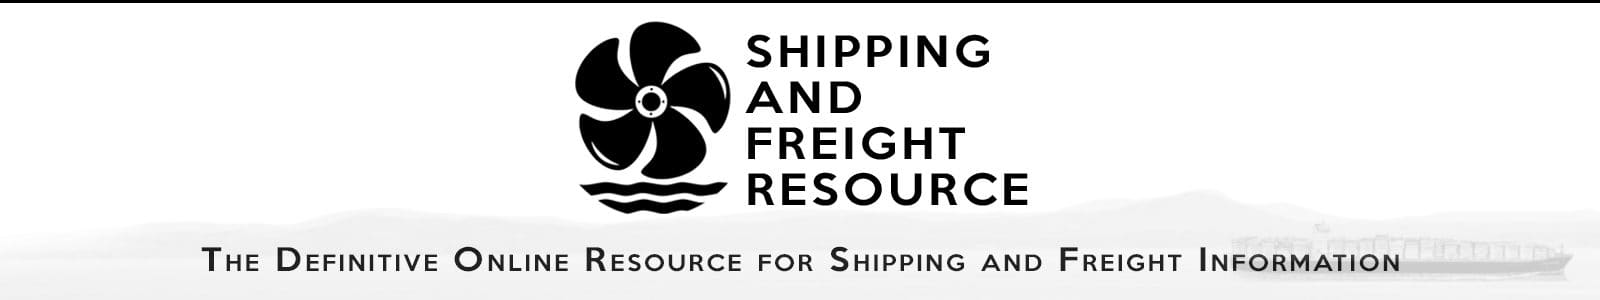 Shipping and Freight Resource - Your definitive online resource for Shipping and Freight Knowledge